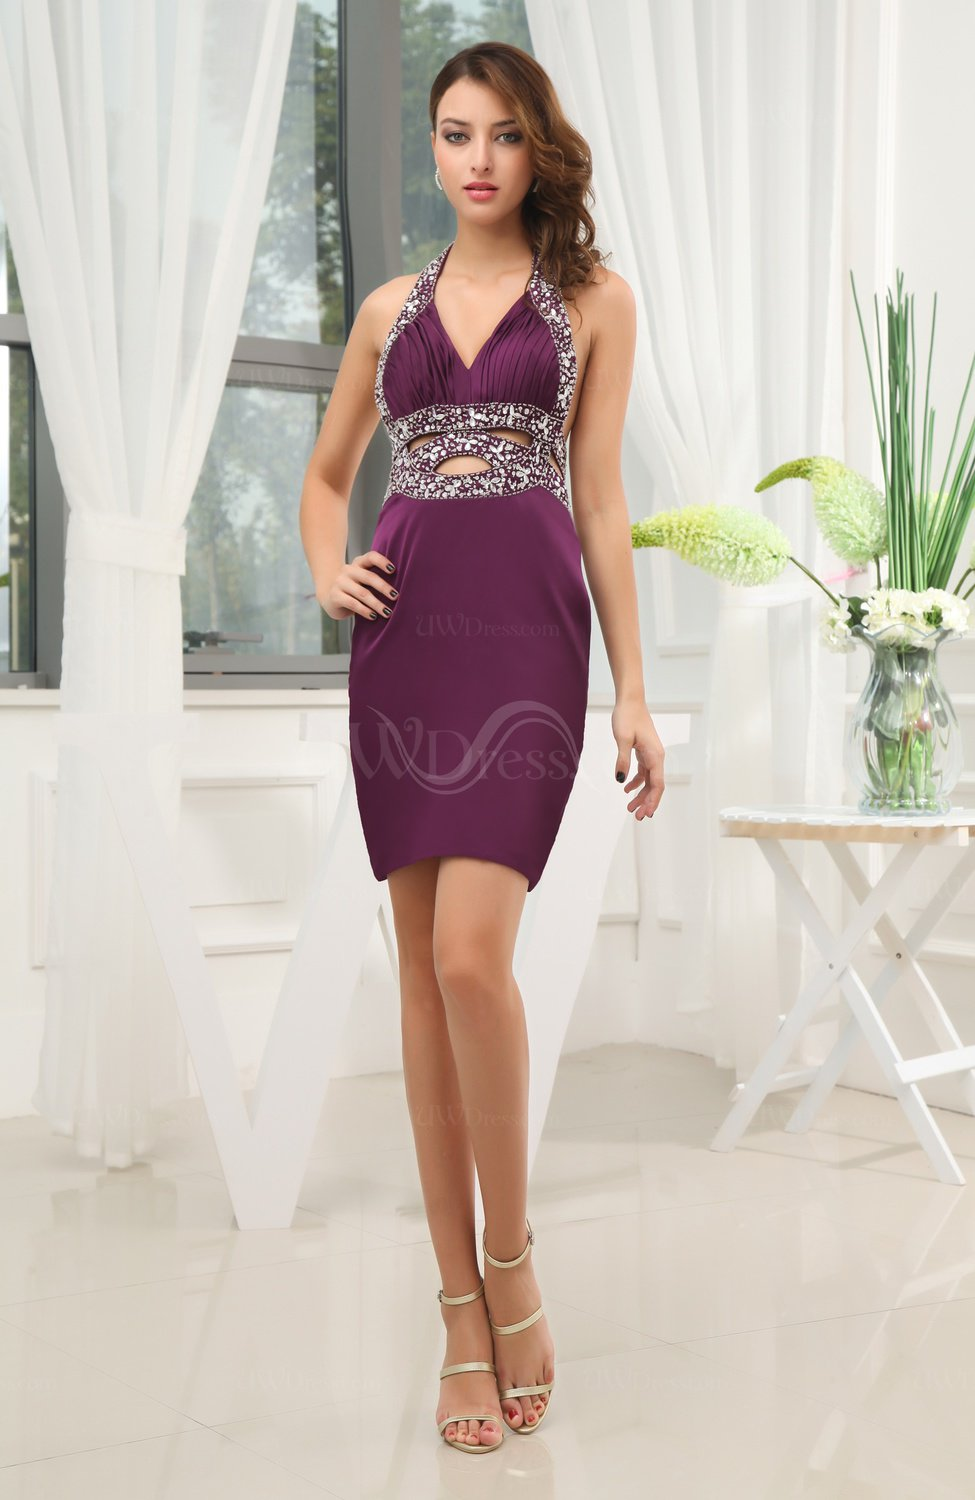 Y Sheath Halter Sleeveless Chiffon Satin Short Wedding Guest Dresses